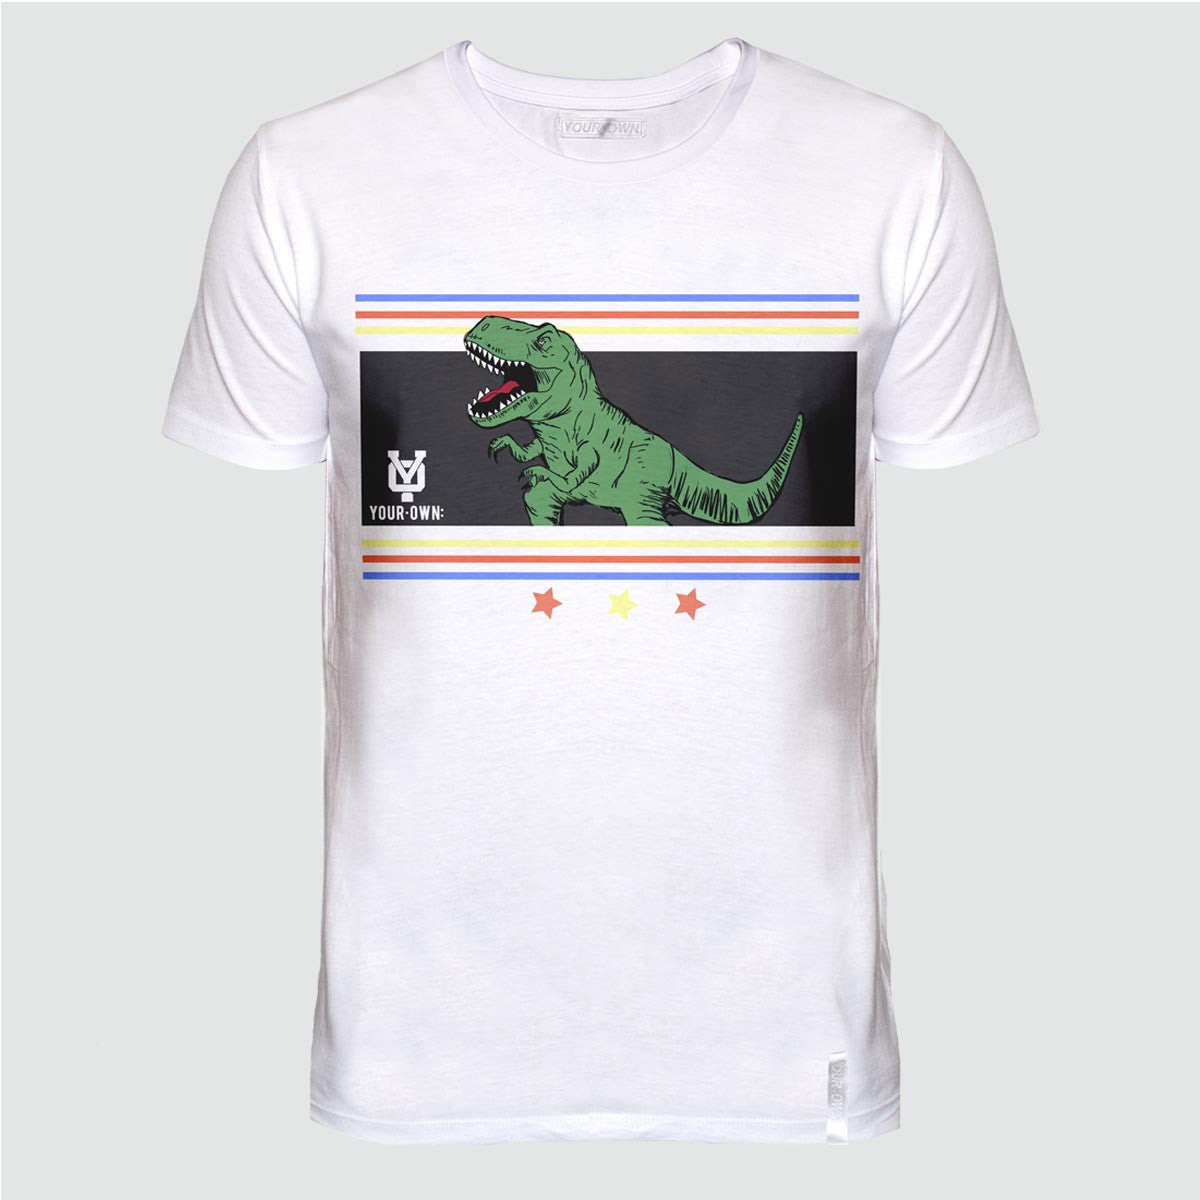 YO 'OLIVERES' T SHIRT WHITE